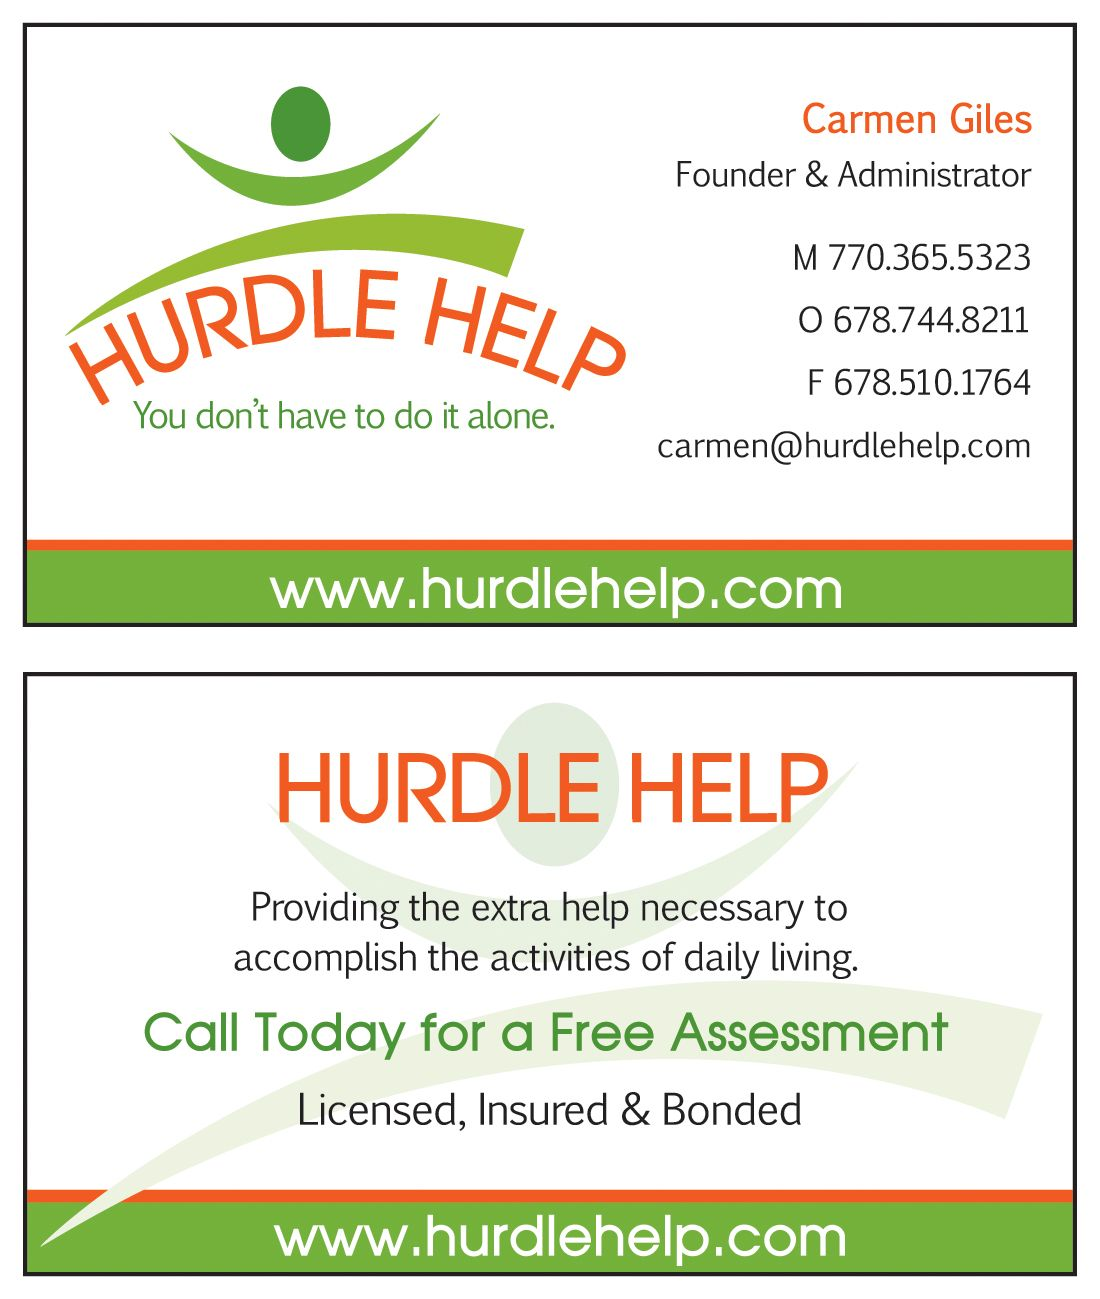 Business card design and layout created for hurdle help a senior business card design and layout created for hurdle help a senior concierge company that offers non medical home care services such as cooking cleaning magicingreecefo Gallery